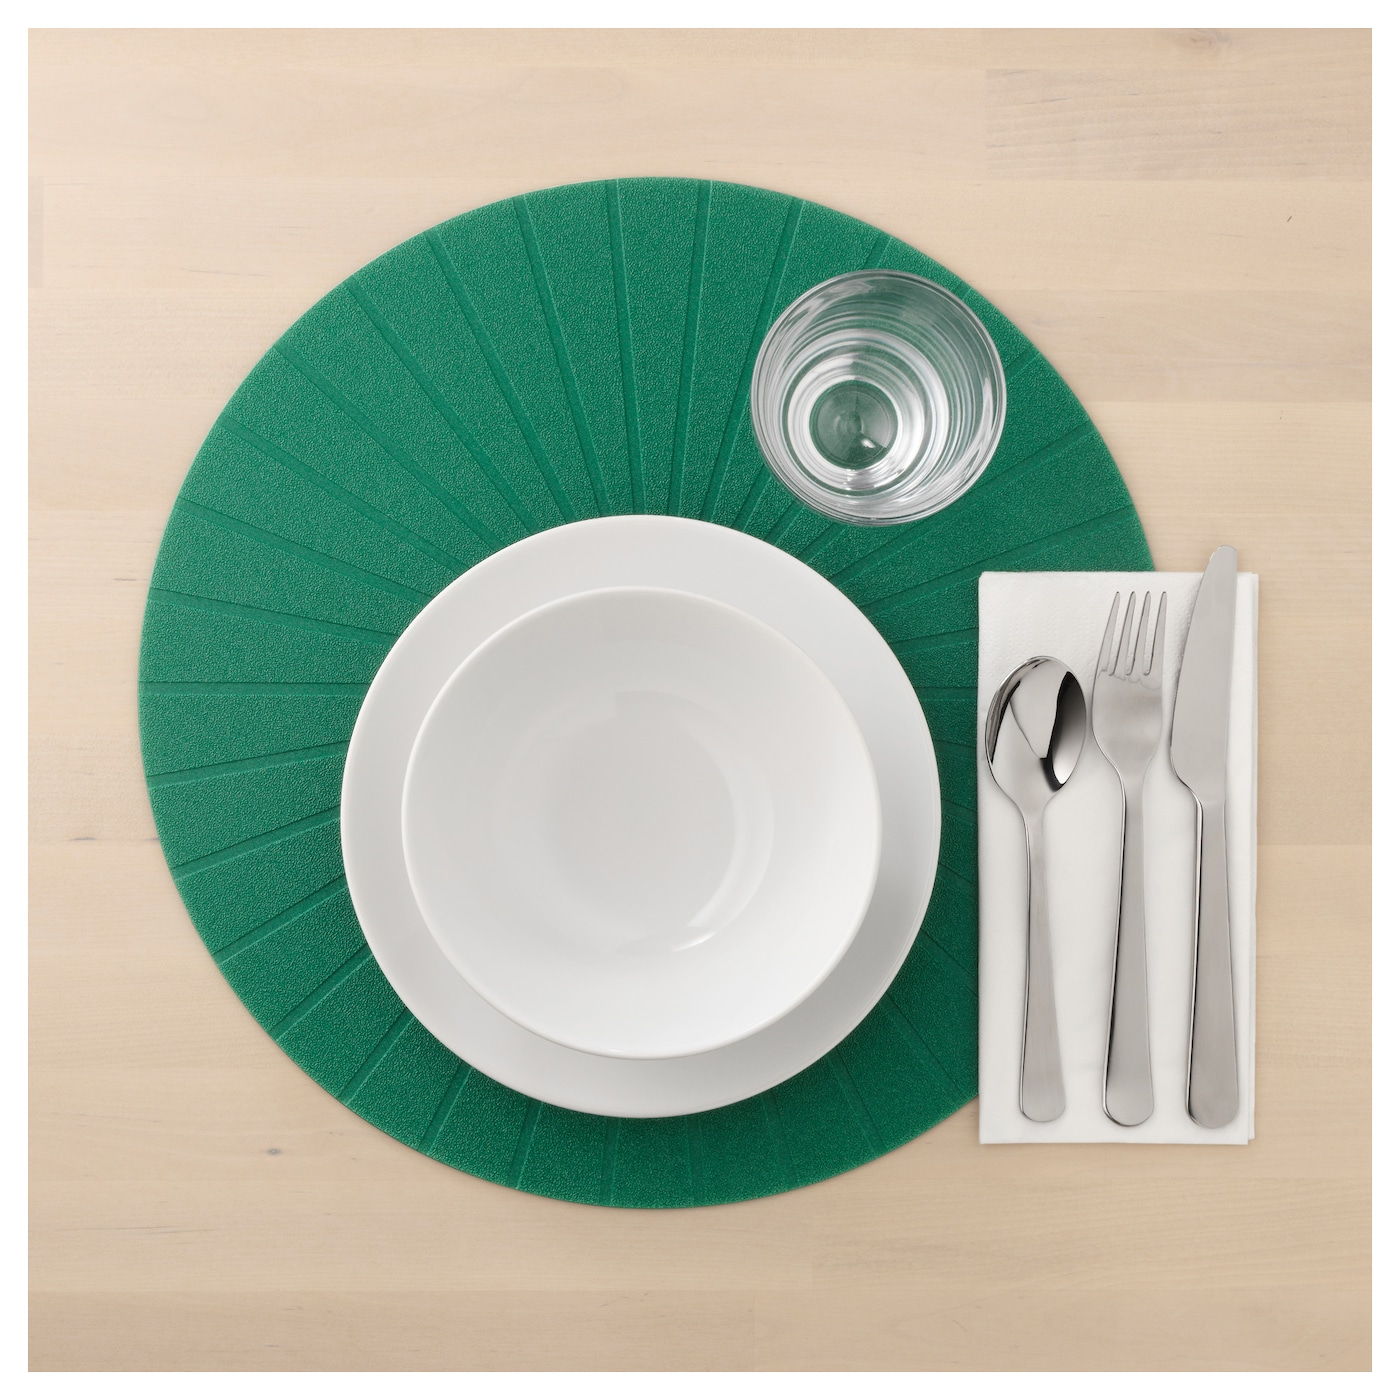 IKEA PANNÅ place mat Protects the table top surface and reduces noise from plates and cutlery.